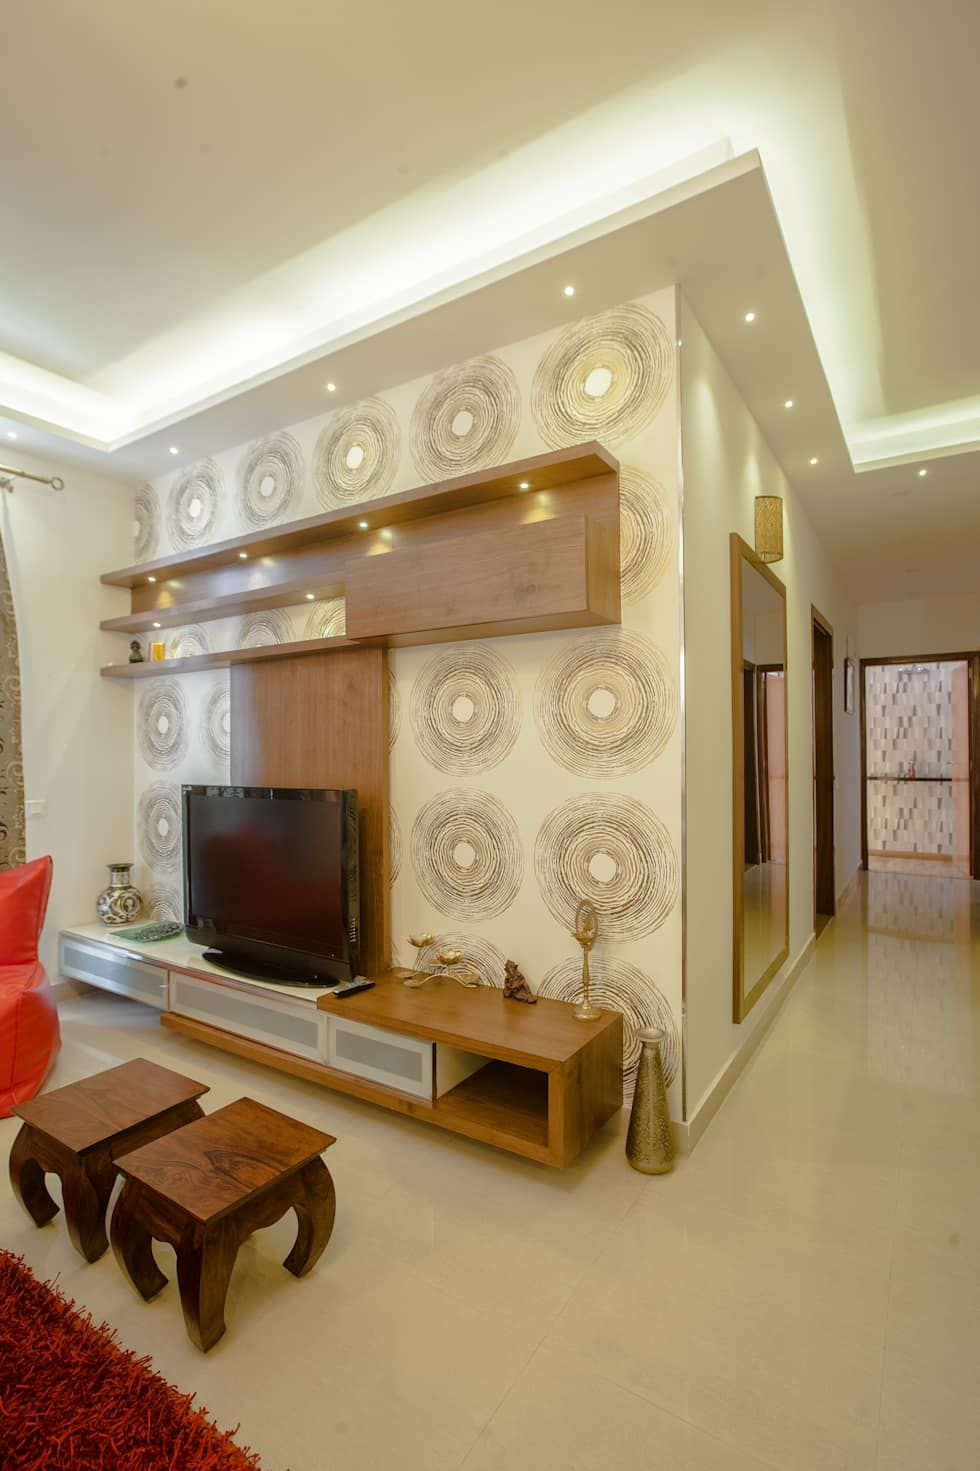 3 Bhk Partement Classic Style Living Room By In Built Concept